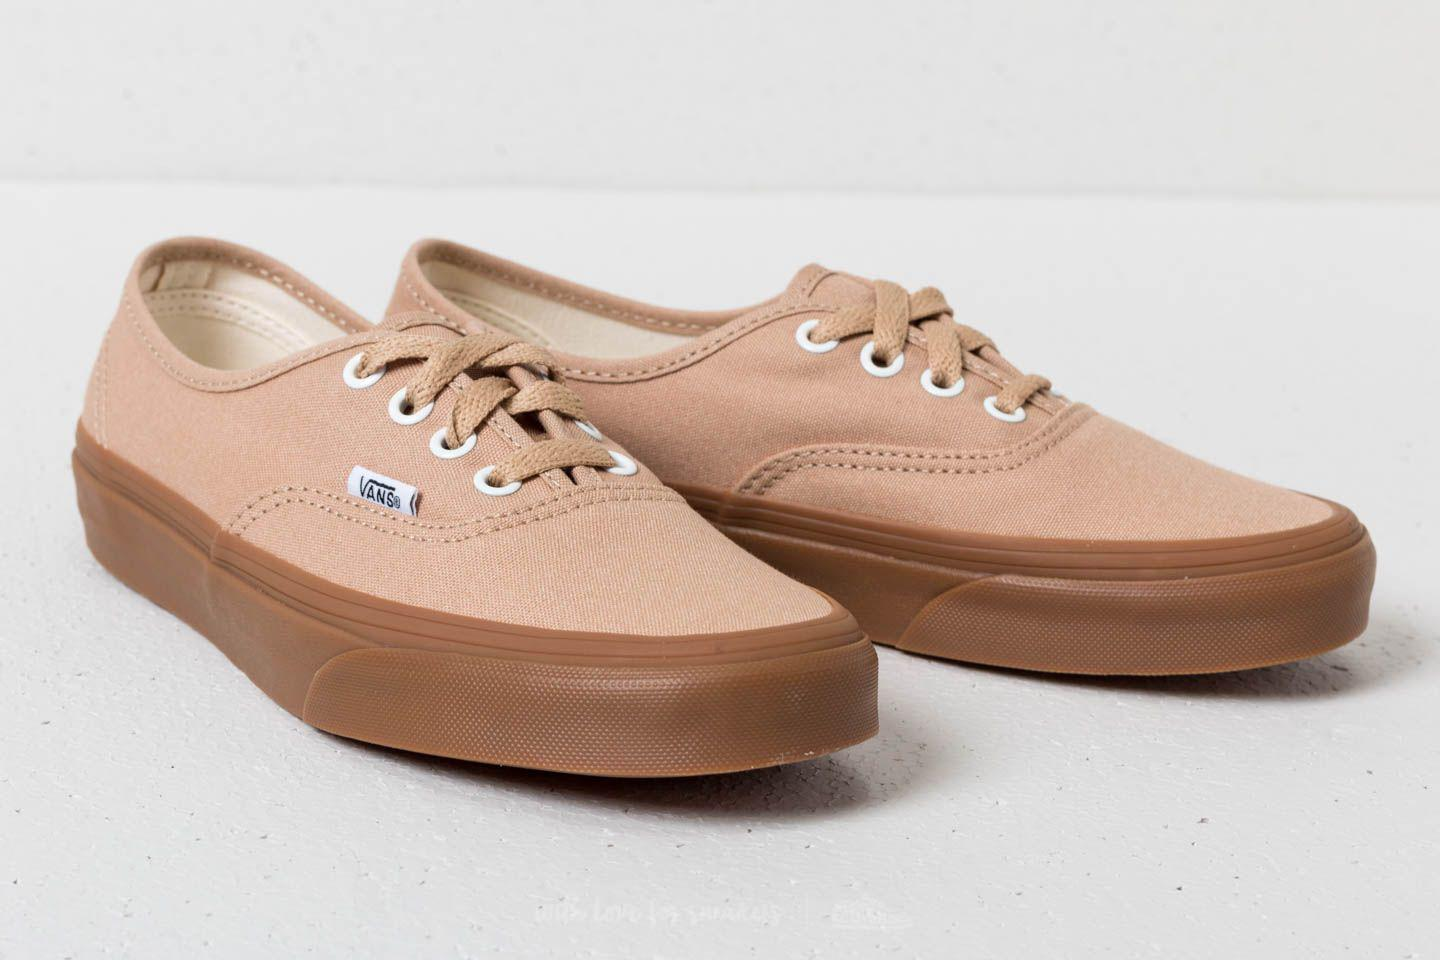 78cb1d26ba90 Lyst - Vans Authentic Sesame  Gum